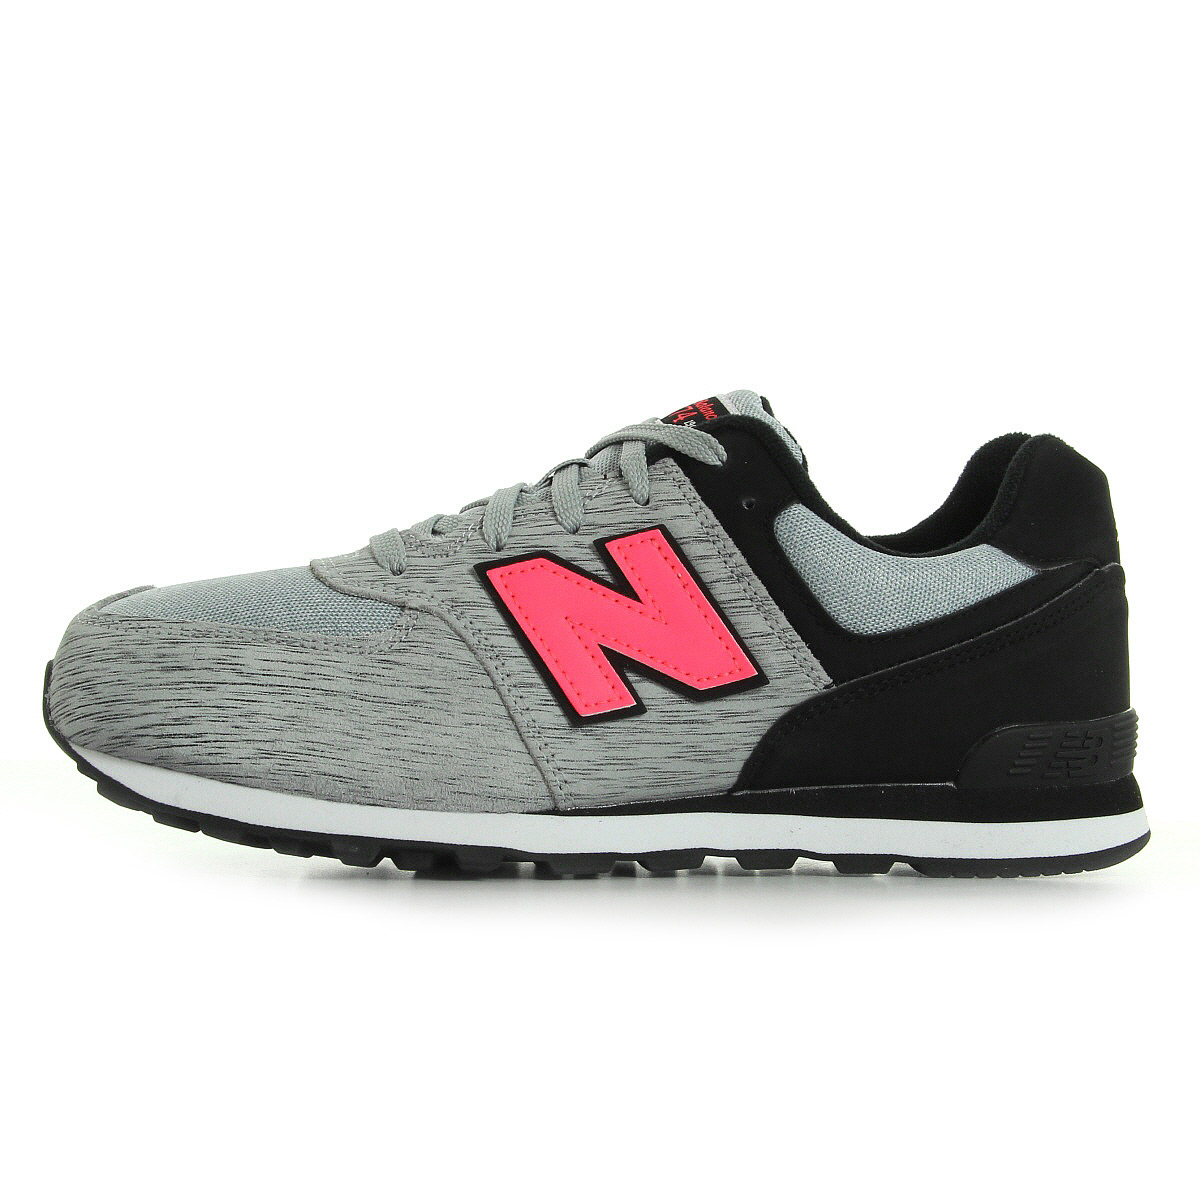 New Balance Grise Et Rose